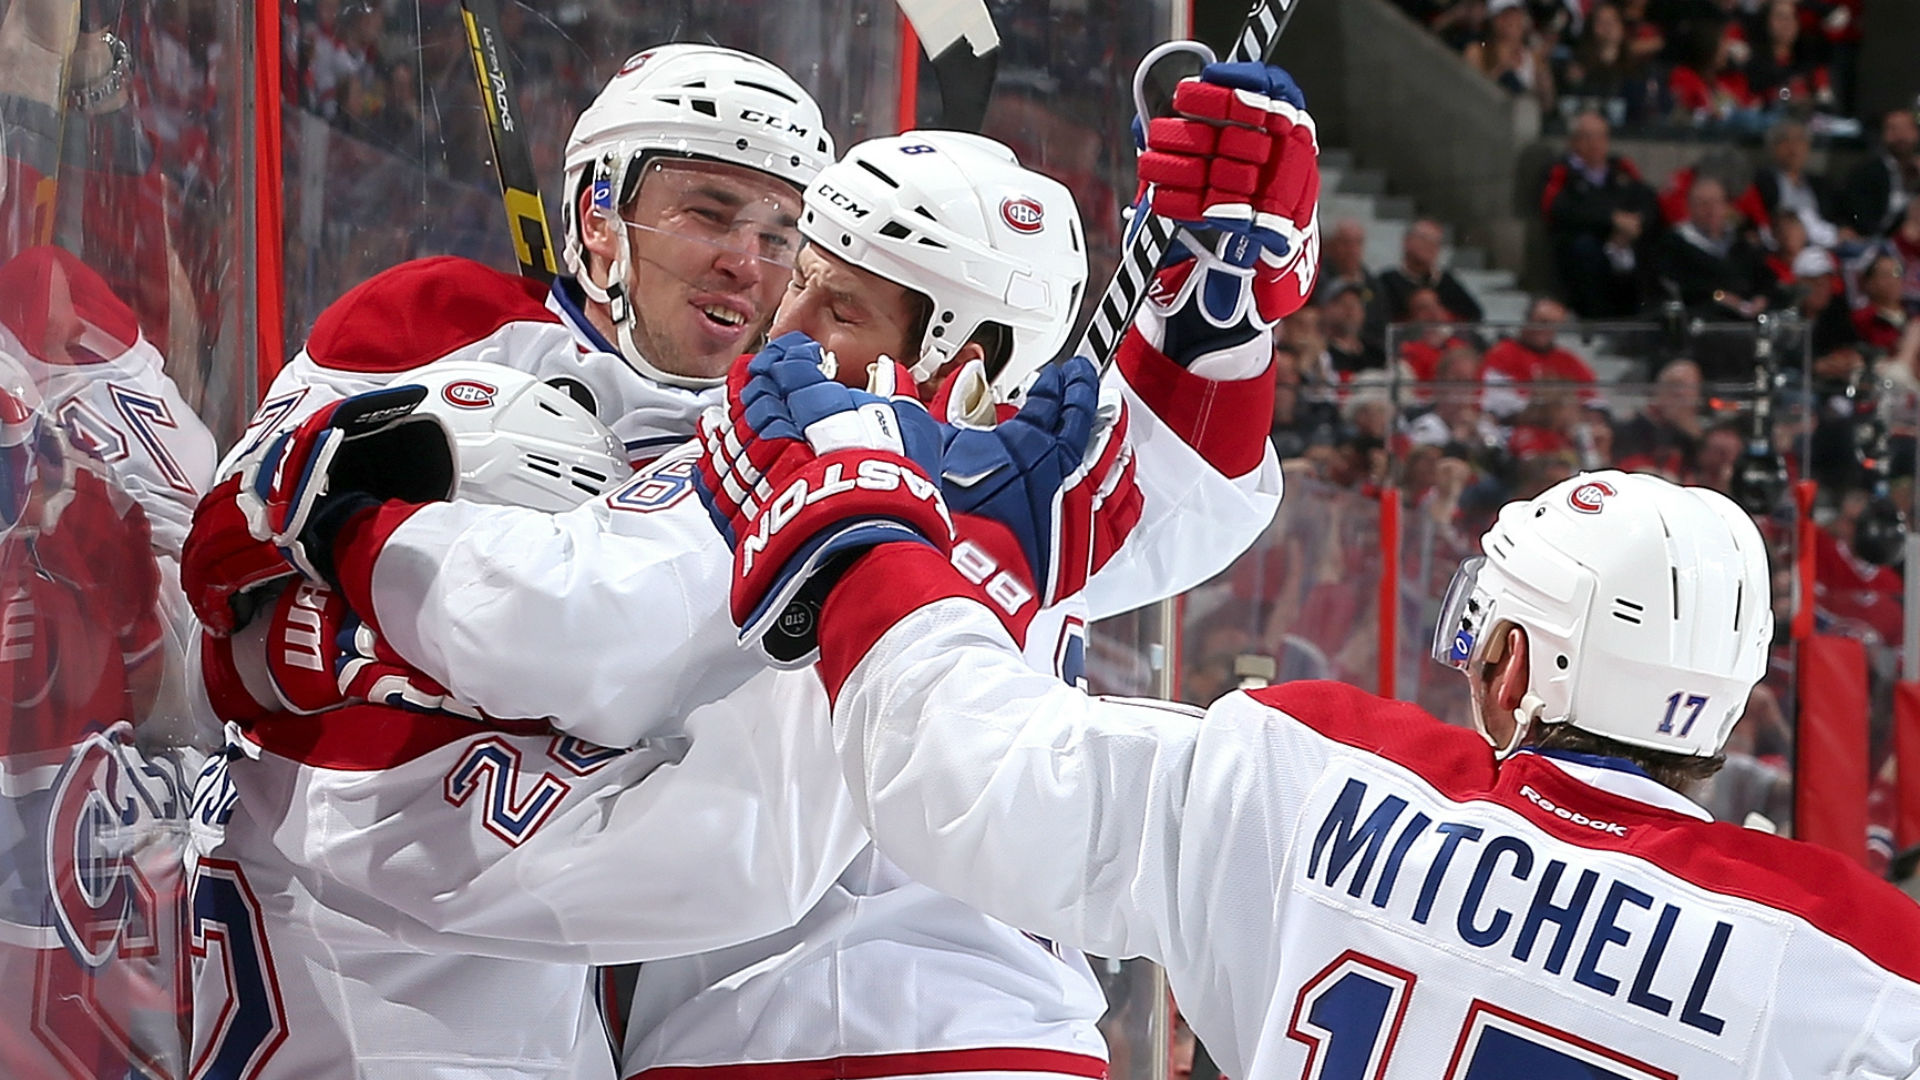 Stanley Cup playoffs roundup: Dale Weise scores twice, Canadiens take commanding 3-0 lead over Sens